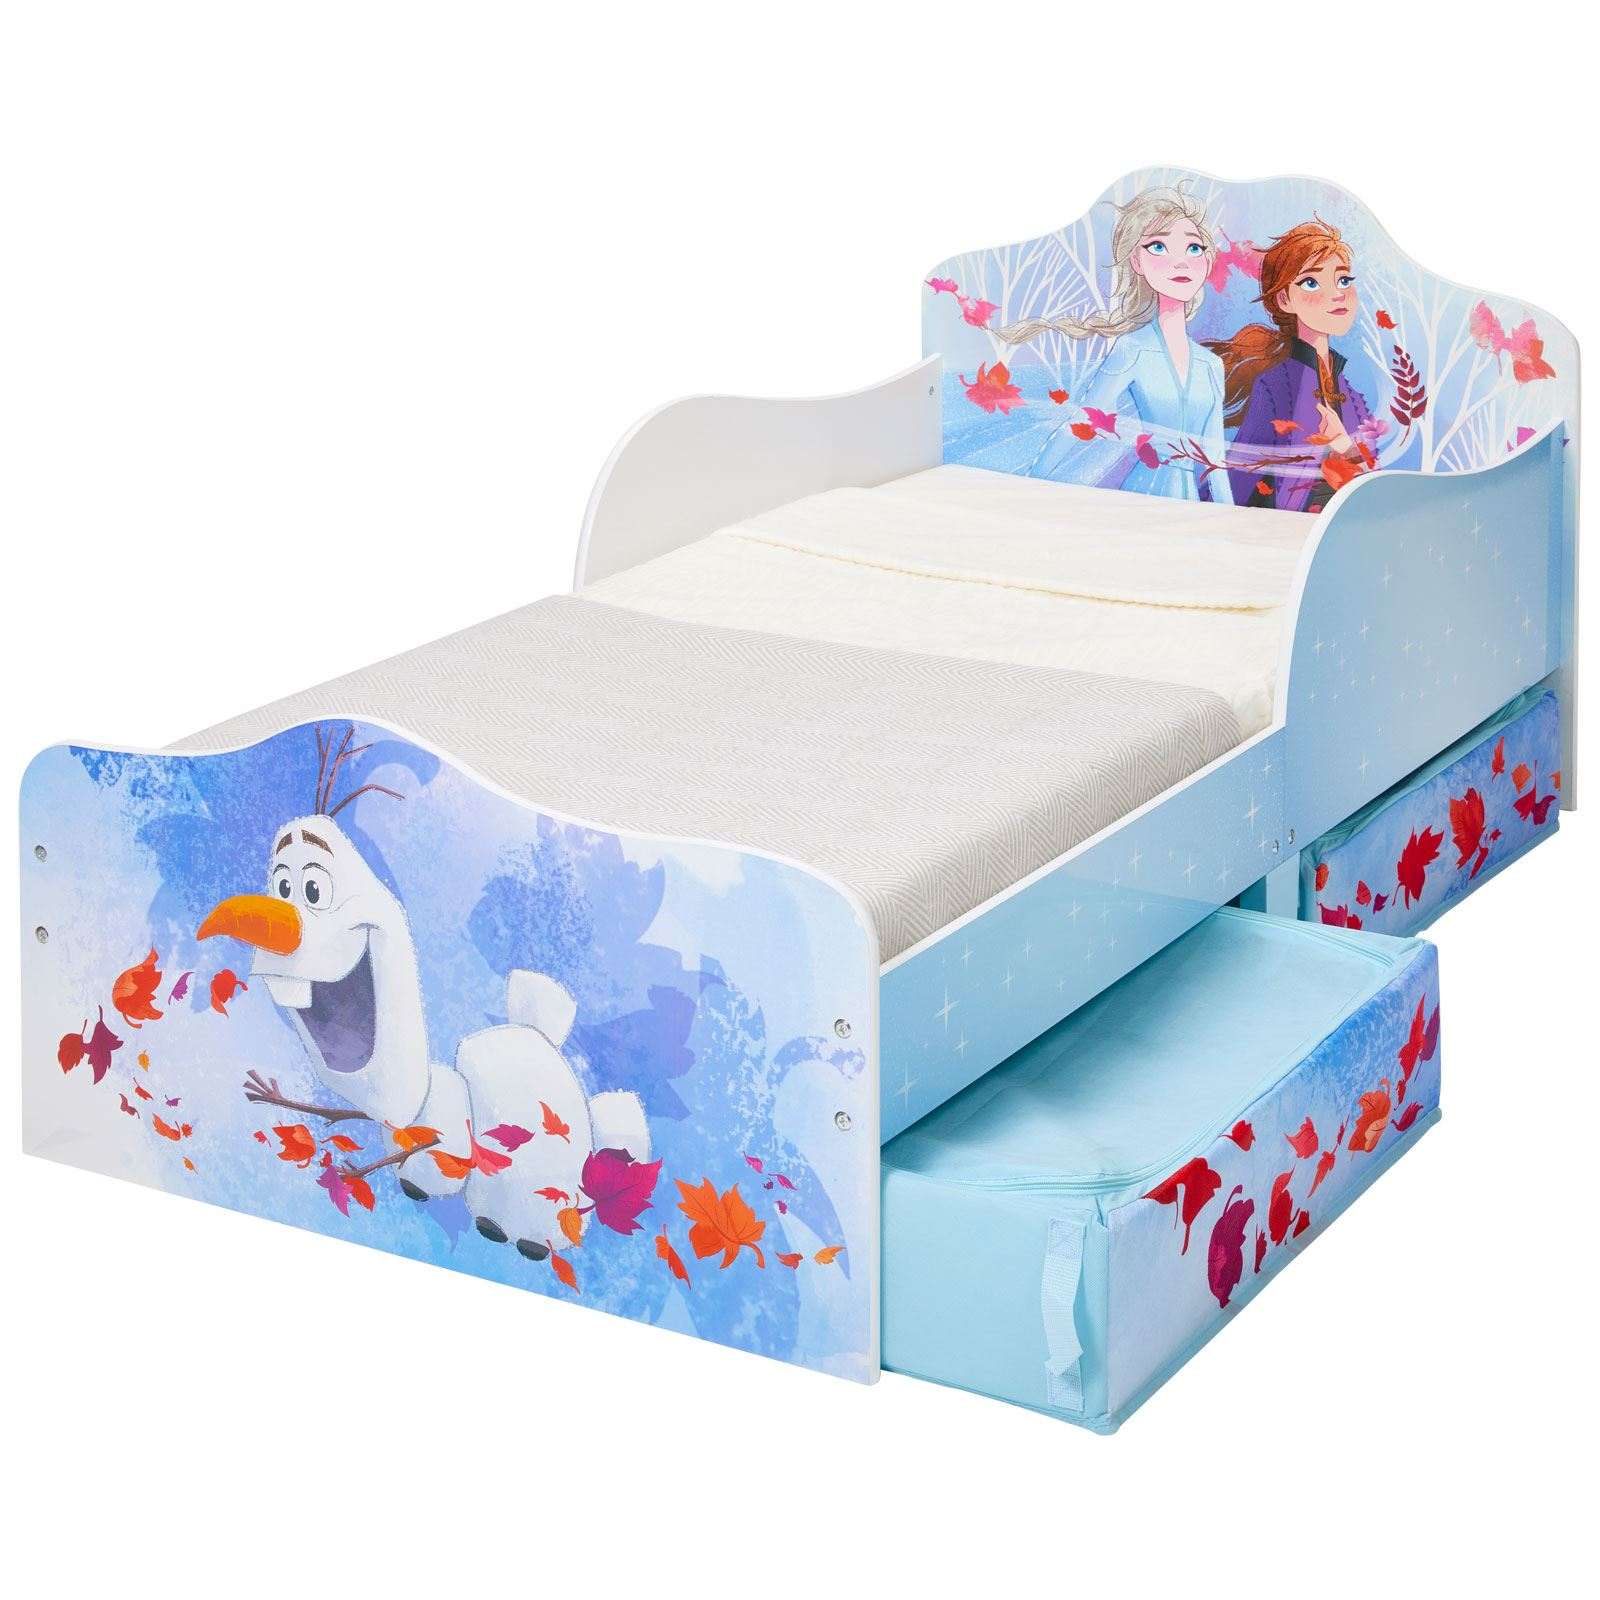 Toy Story 4 Toddler Bed with Storage Plus Deluxe Foam Mattress